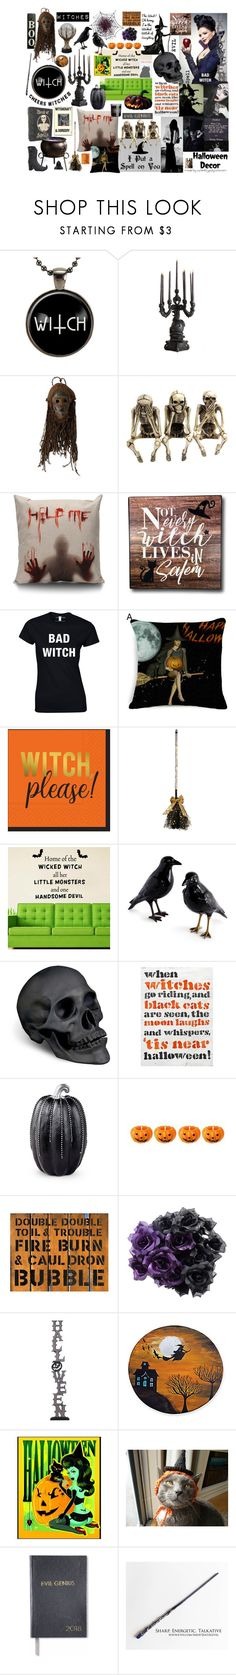 """""""The West? Oh Honey, I'm the Wicked Witch of Everything!"""" by curekitty ❤ liked on Polyvore featuring Seletti, Grandin Road, NOVICA, Design Design, L'Objet, Pottery Barn, Improvements and Sloane Stationery"""